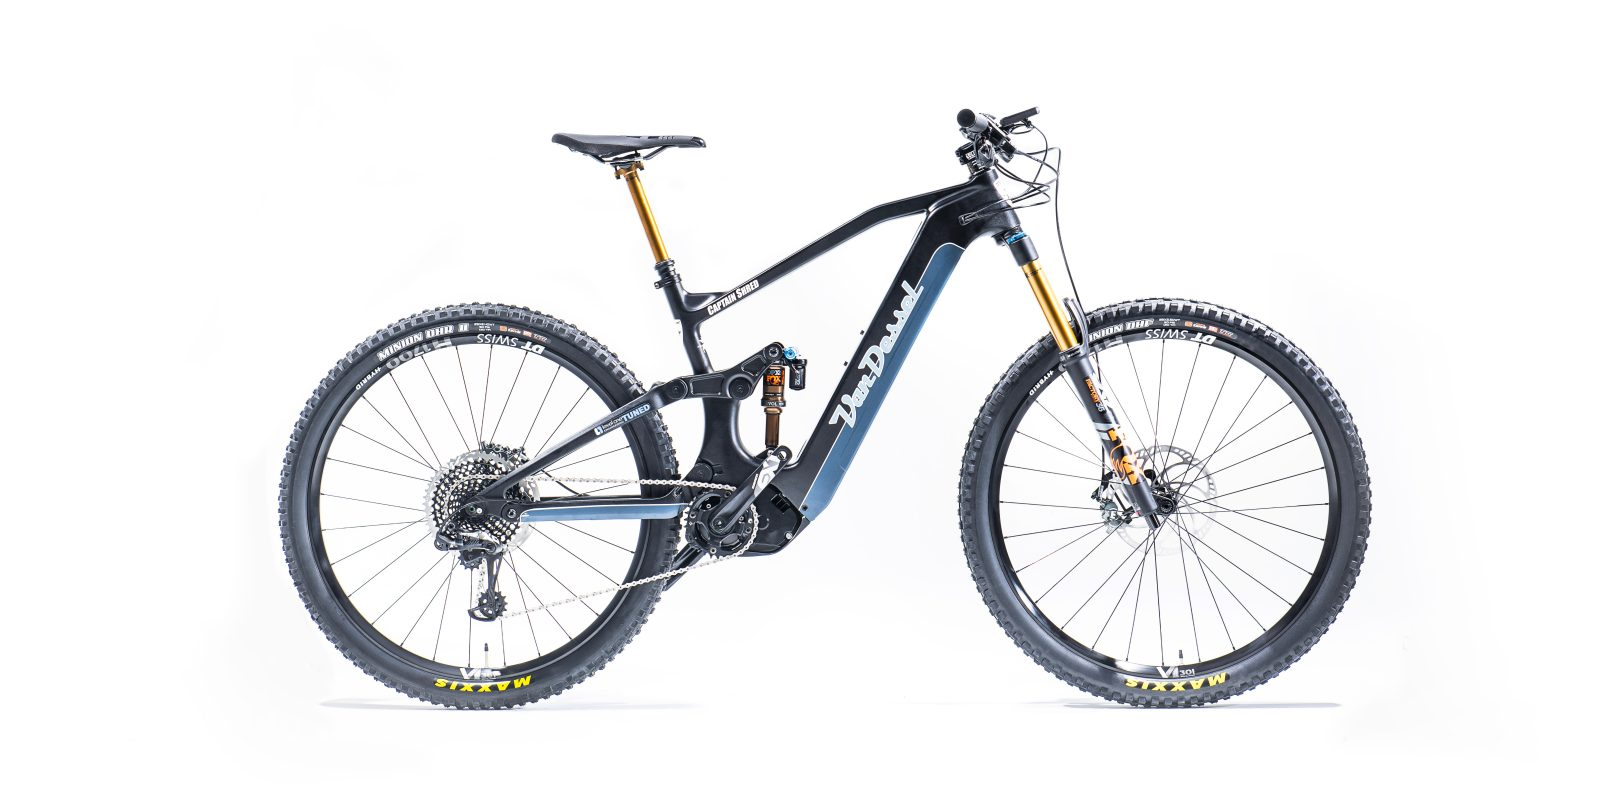 Despite holding over 50% of the market for electric bicycles in Japan a077f5f70